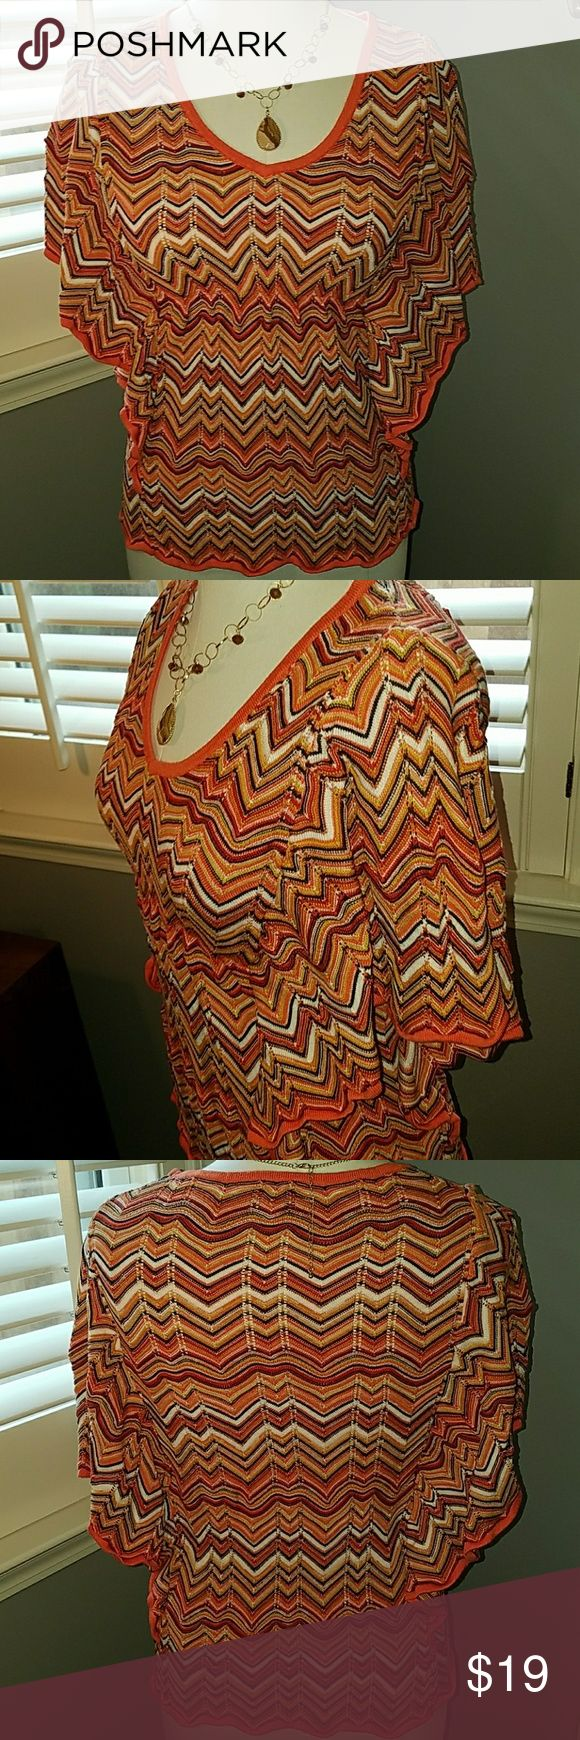 INC Flutter-sleeve coral, white chevron top Small Perfect for spring! Coral trimmed at hemline, along flutter sleeves, and v-neck. Coral, gold, brown, white, orange chevron pattern. (necklace not for sale) Cotton/rayon blend. INC International Concepts Tops